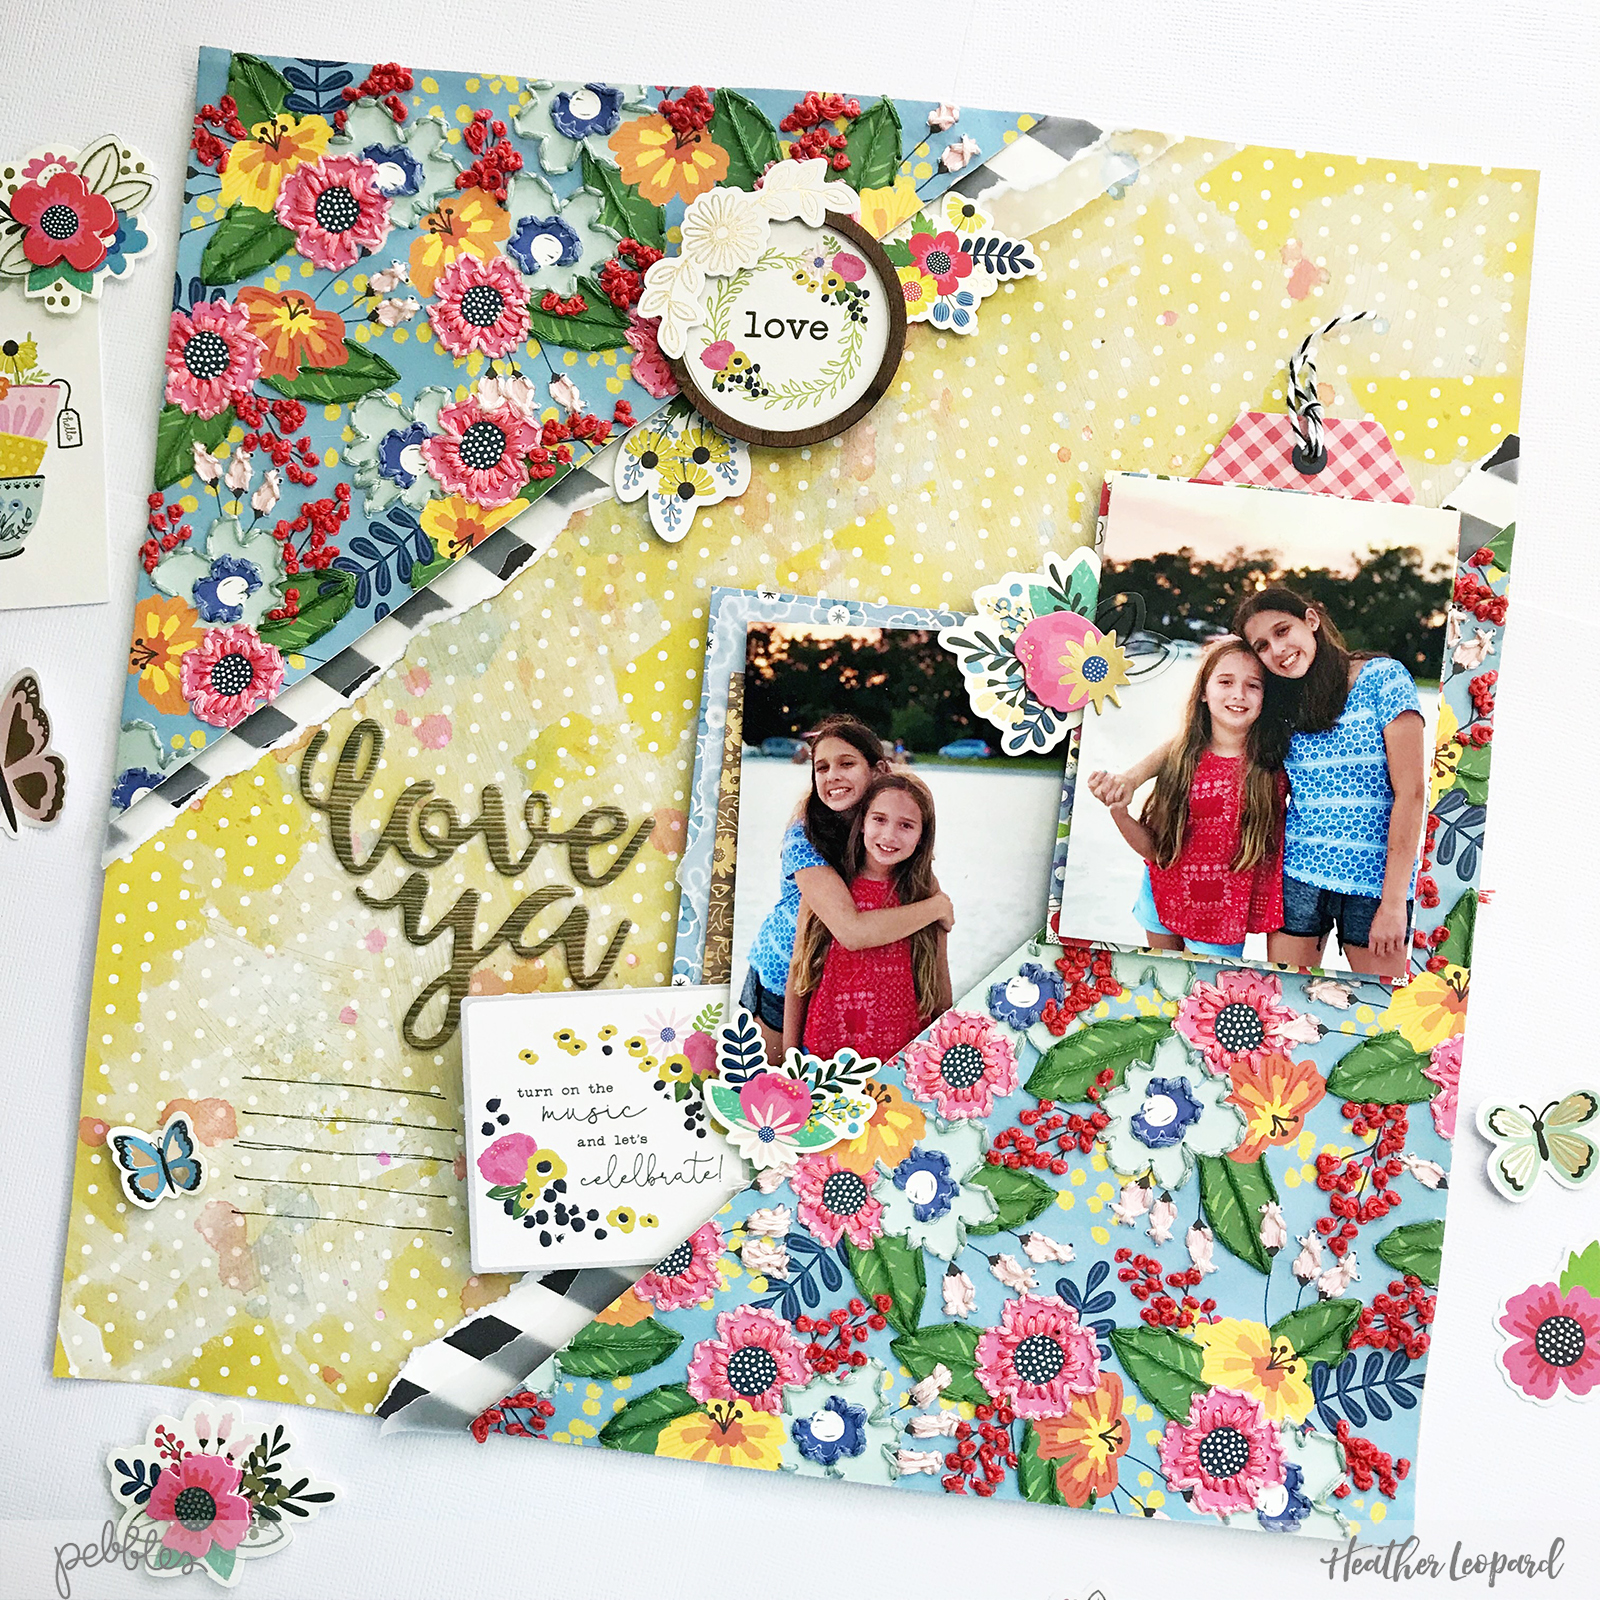 Embroidered Patterned Paper Scrapbooking by @HeatherLeopard using @PebblesInc #MyBrightLife collection #scrapbooking #sewing #mixedmedia #papercrafts #scrapbook #embroidery